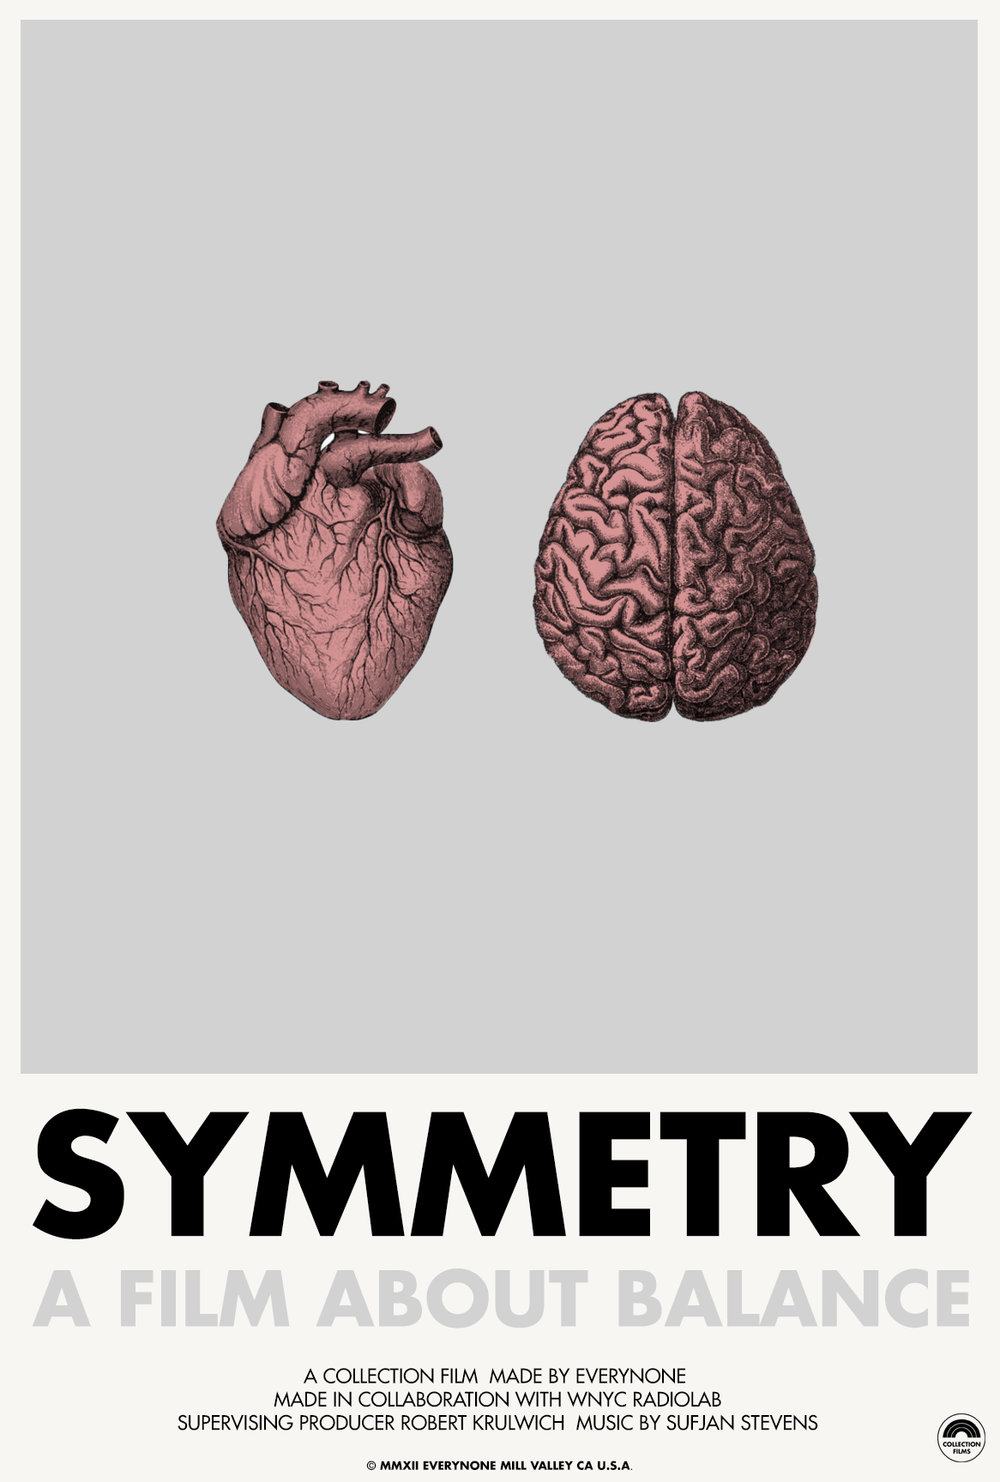 SYMMETRY  - A film about balance.  Made in collaboration with WNYC RadioLabCredits:Made by EverynoneDirector/DP/Editor - Daniel Mercadante Supervising Producer: Robert KrulwichProducer - Brendan LynchAssociate Producer: Jad AbumradMusic - Sufjan StevensFeatured:Vimeo Awards - Winner - Grand PrizeVimeo Awards - Winner - LyricalVimeo Staff PickColossalGizmodoIt's Nice ThatBooooooom